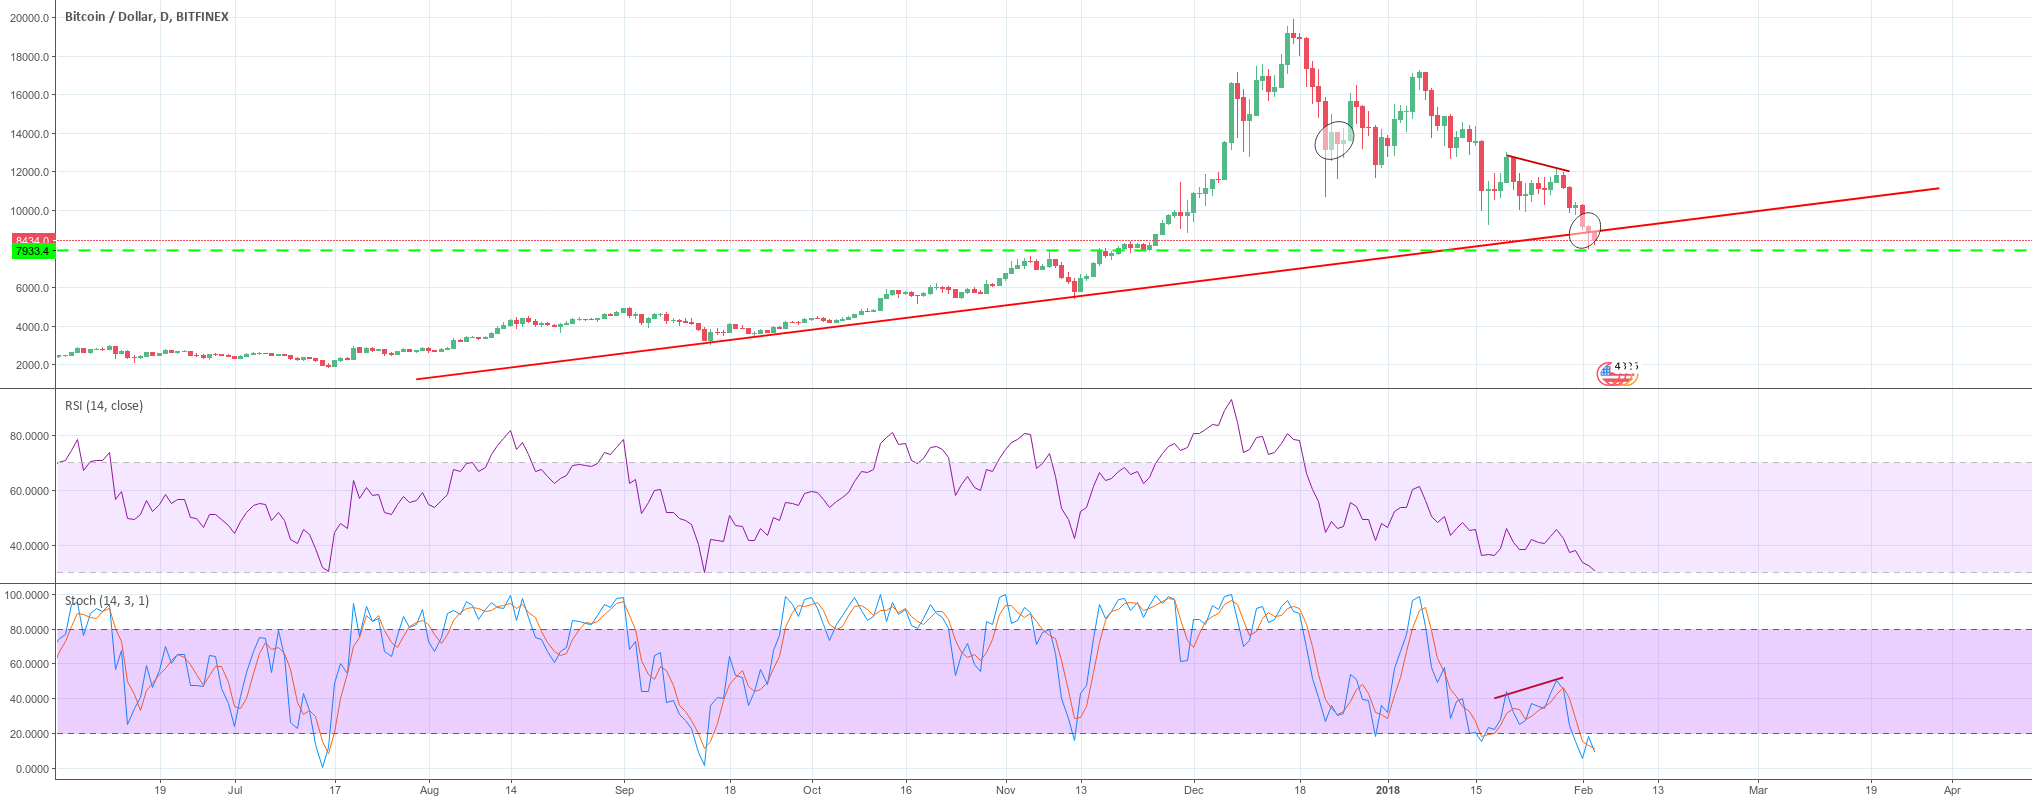 BTC short-term price recovery